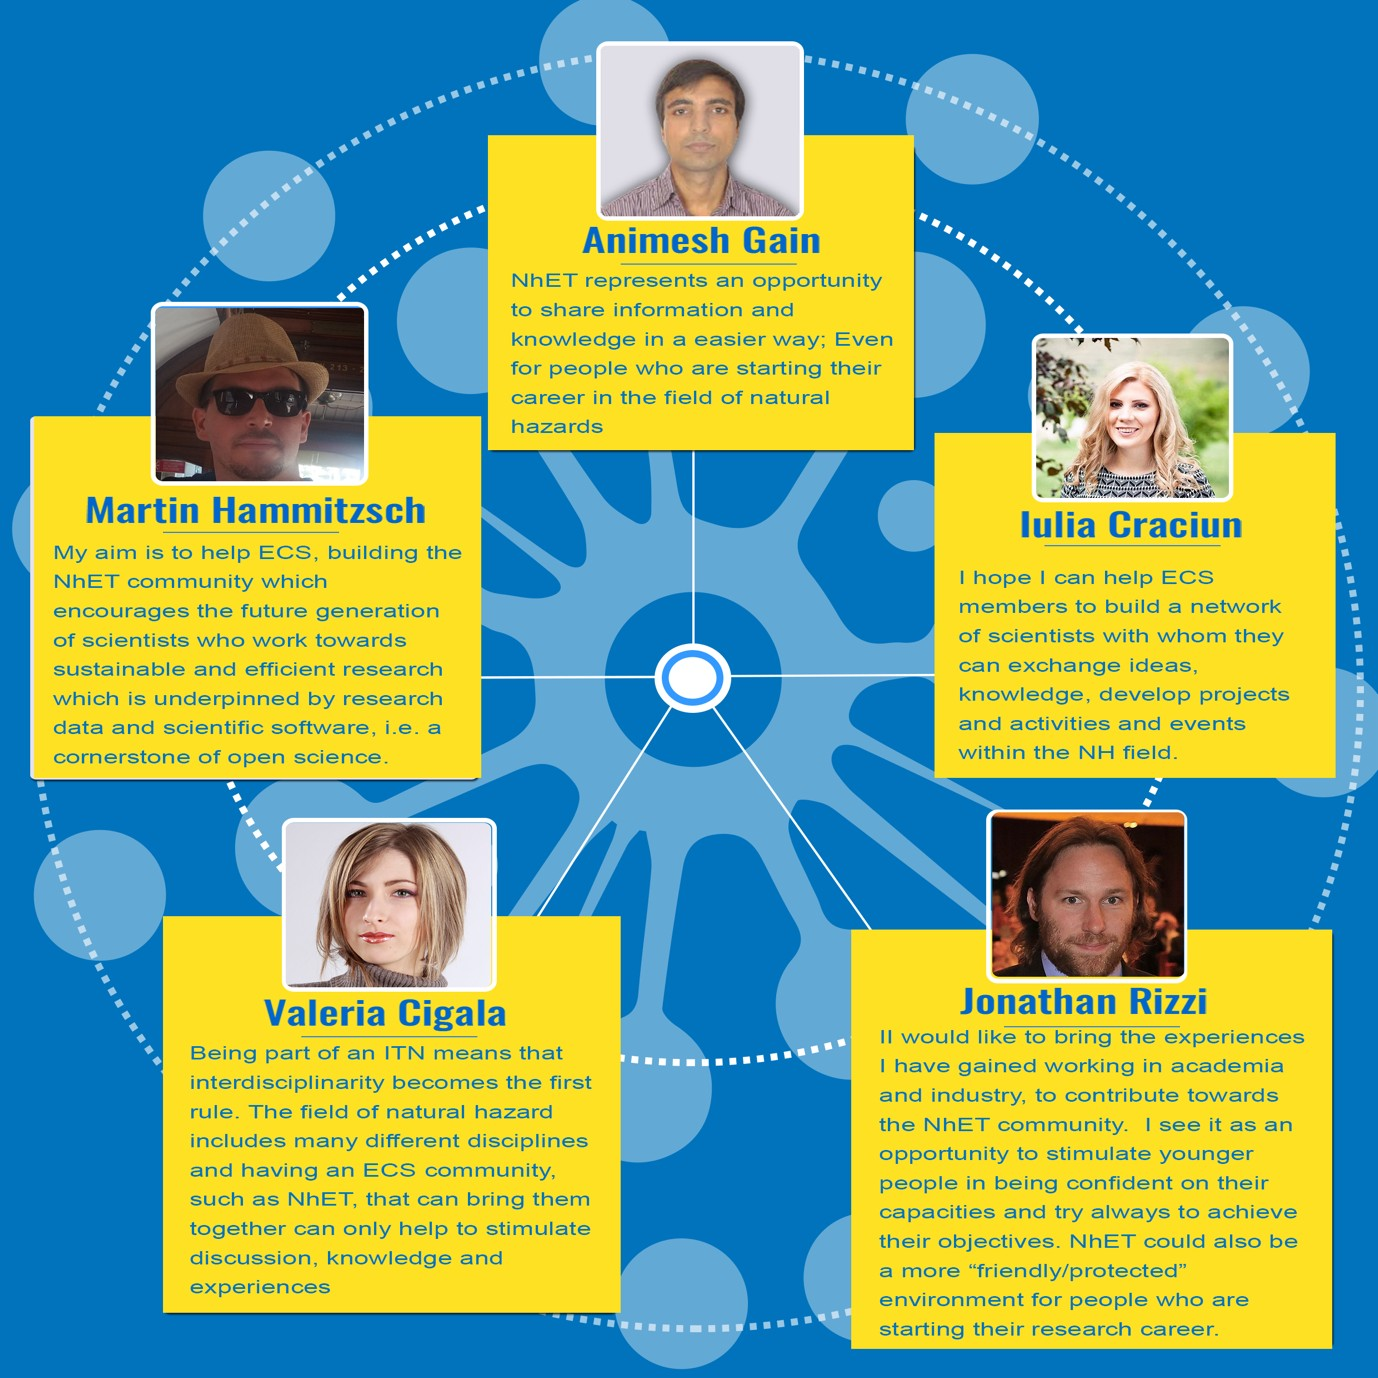 Meet the team which makes up NhET (Natural hazard Early career scientists Team).